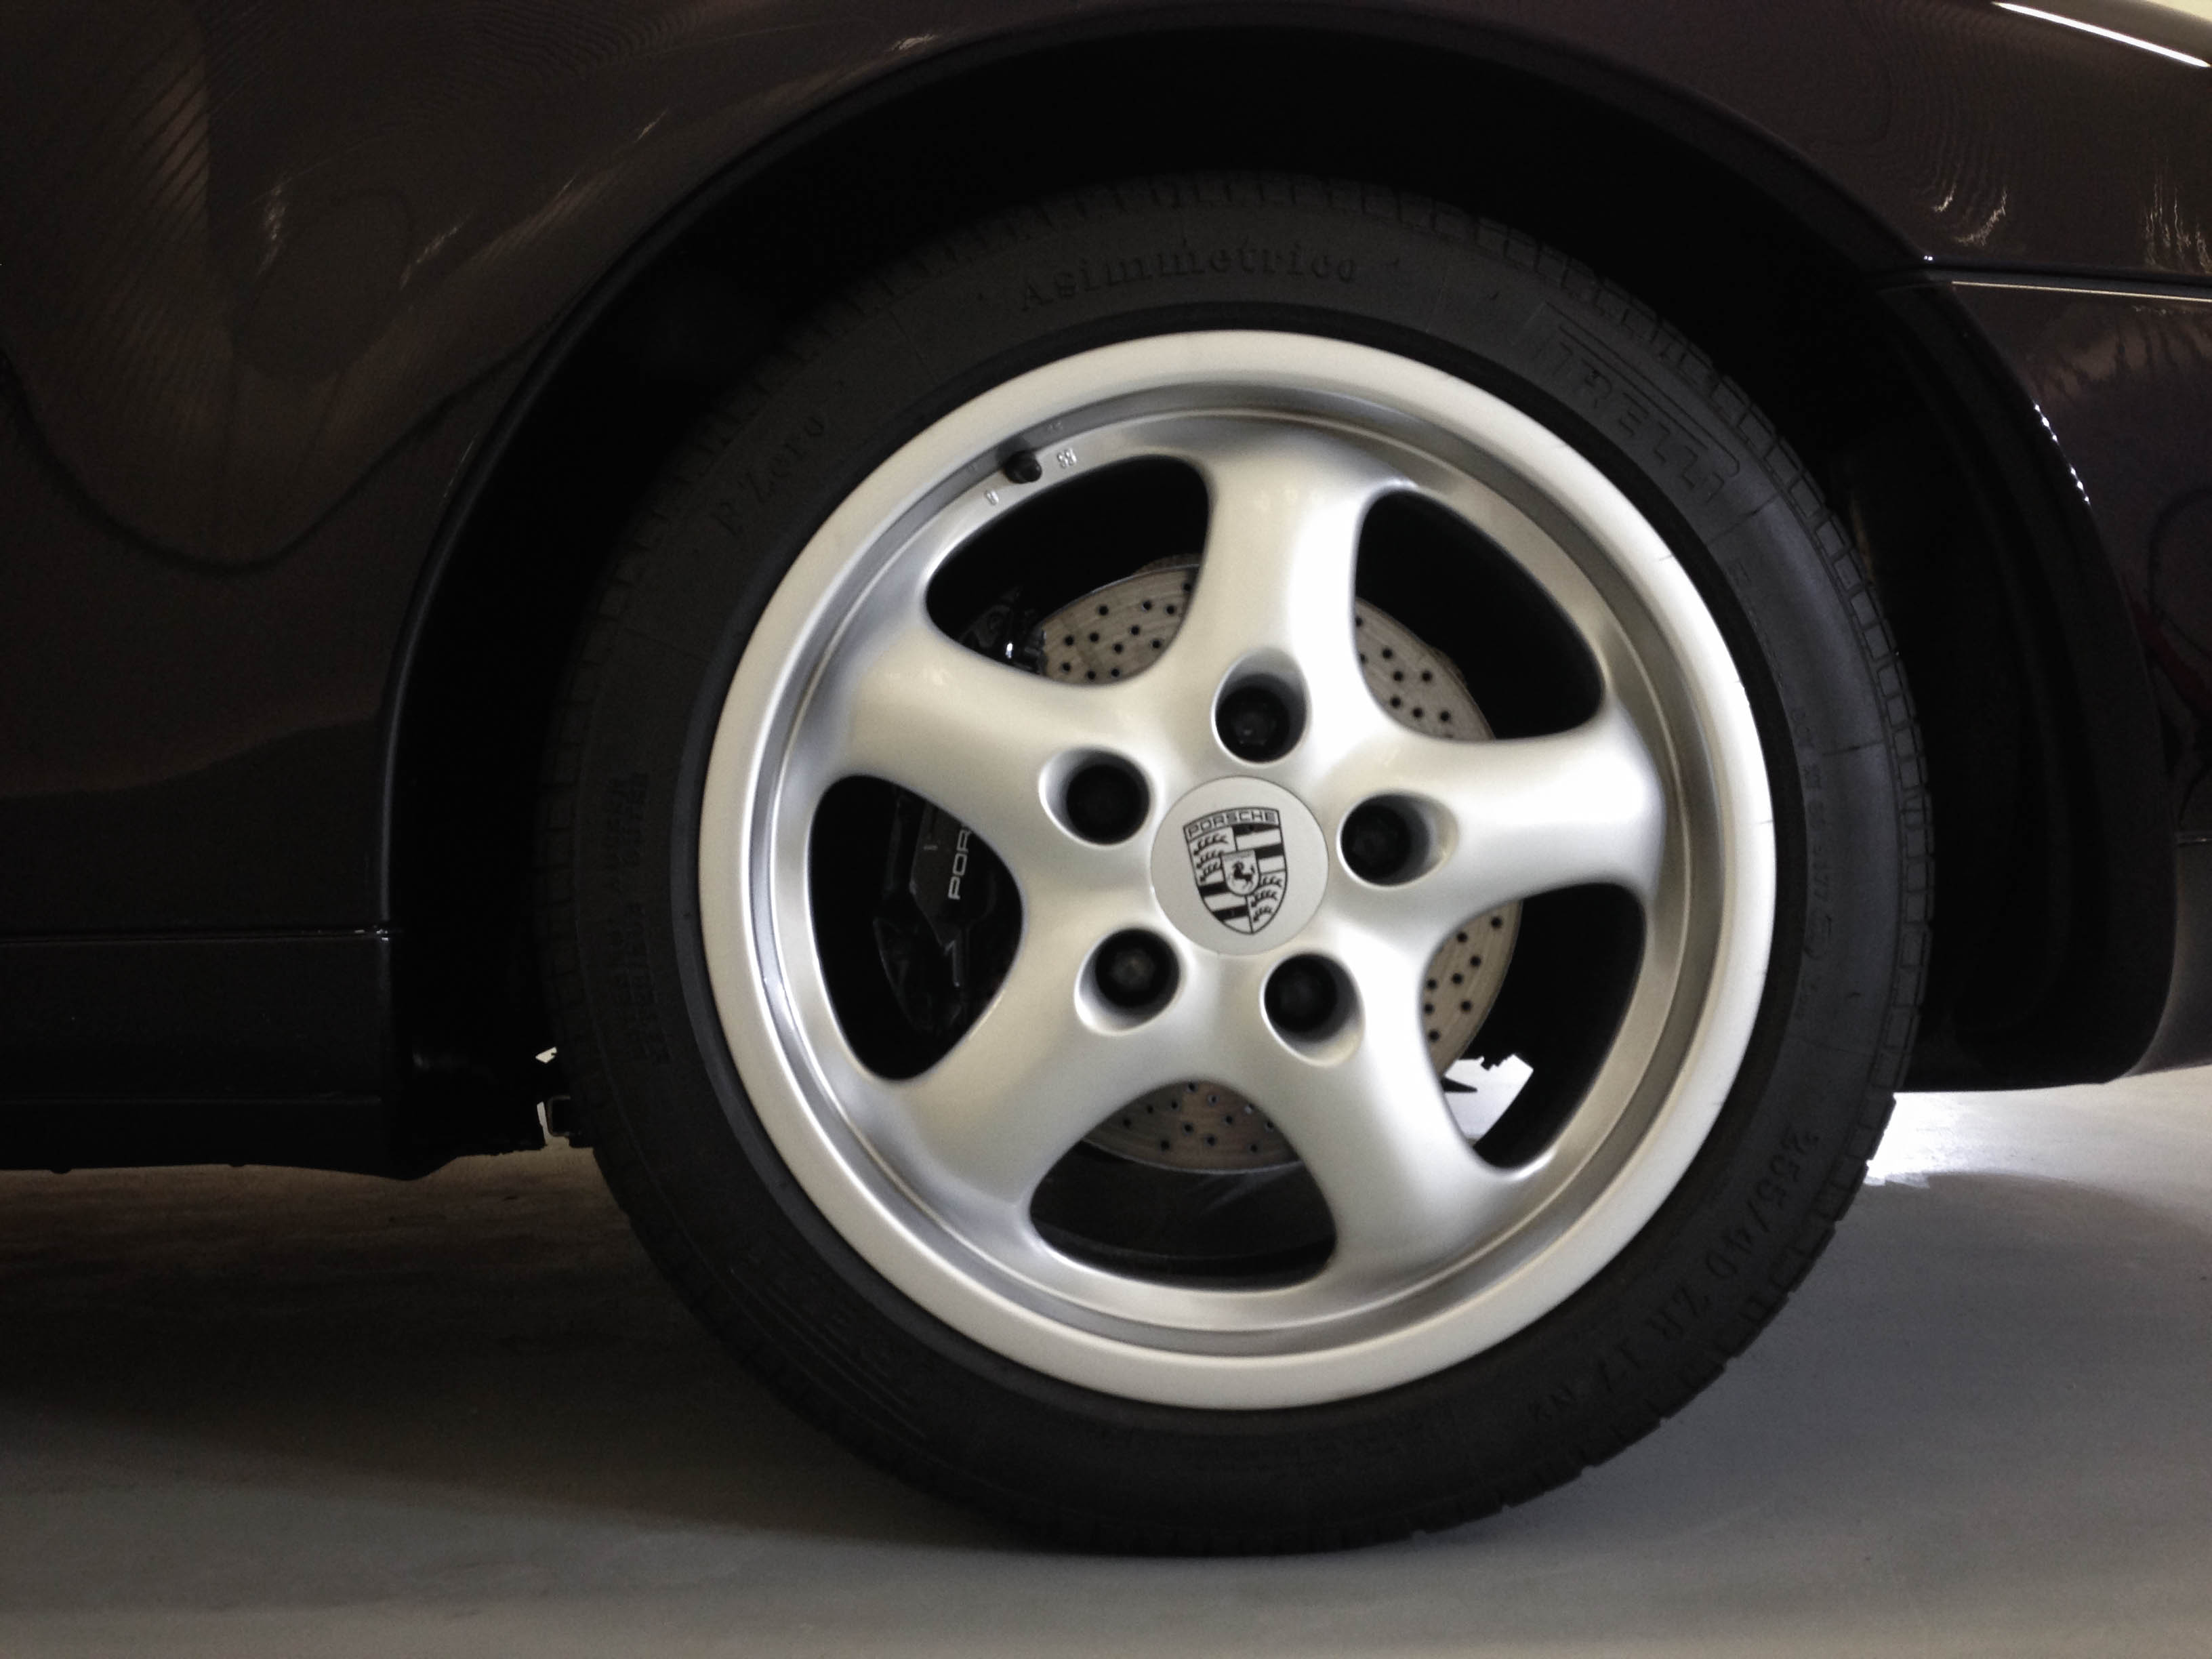 Porsche 993S – Wheel refurbished